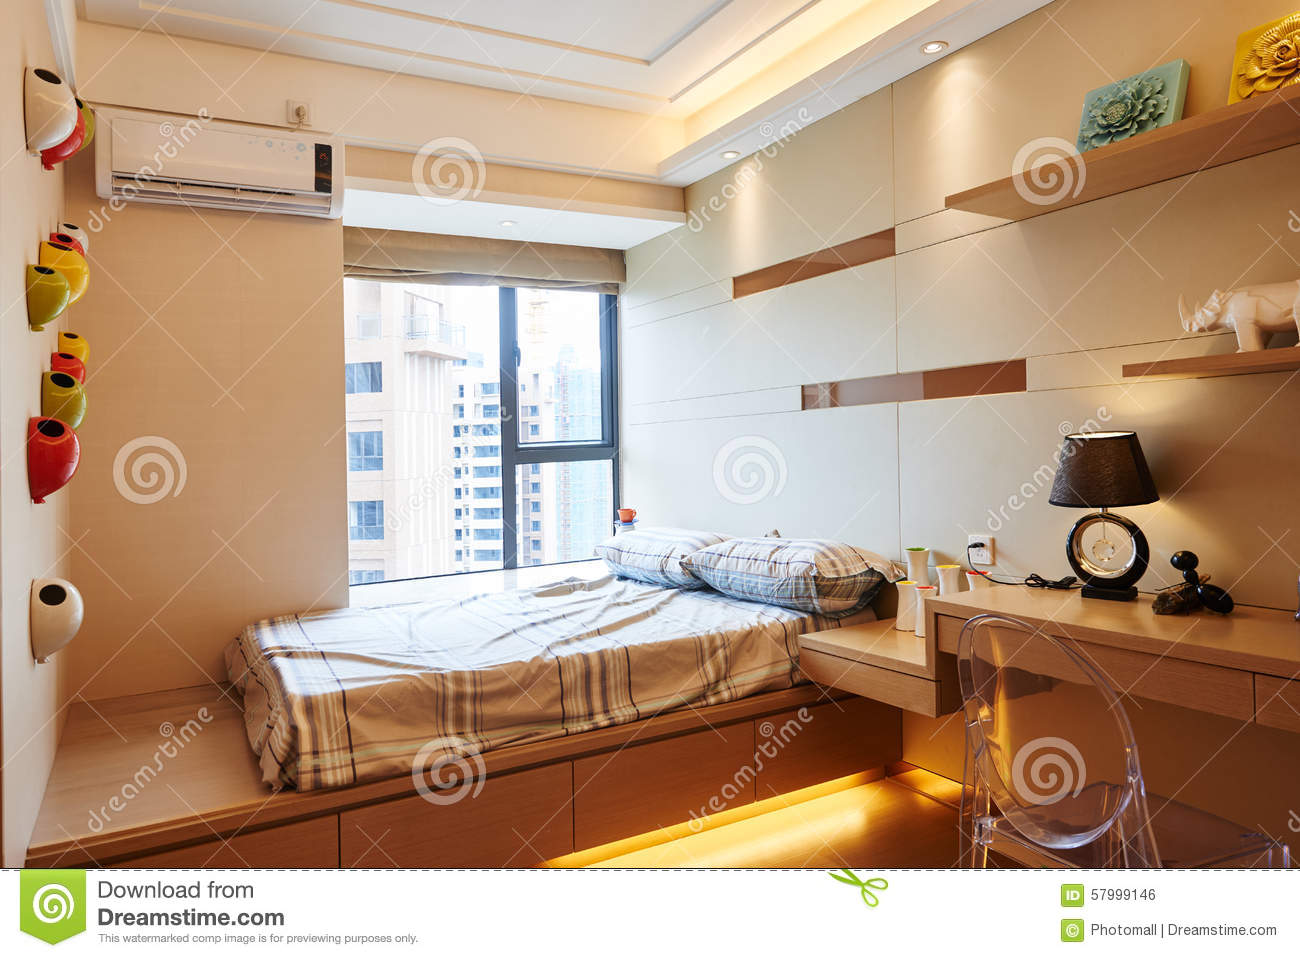 Small bedroom stock photo. Image of contemporary, cushion - 57999146